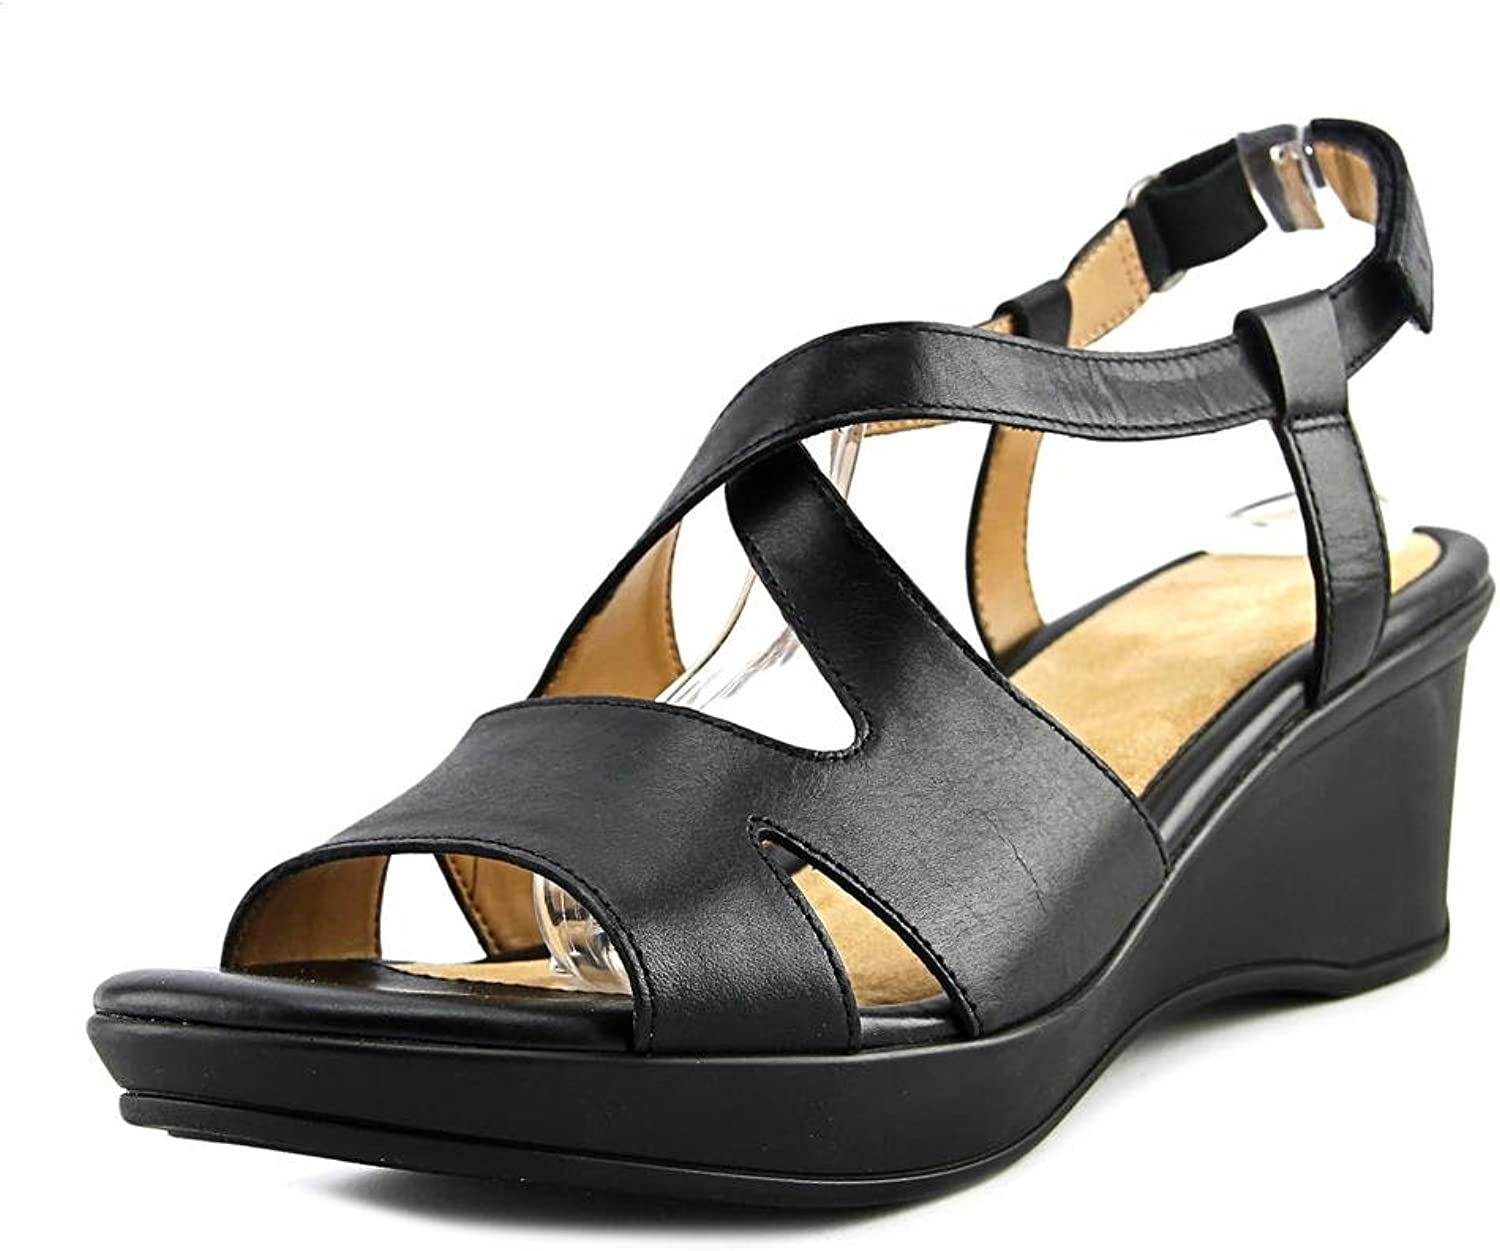 Naturalizer Womens Villette Leather Slingback Wedge Sandals